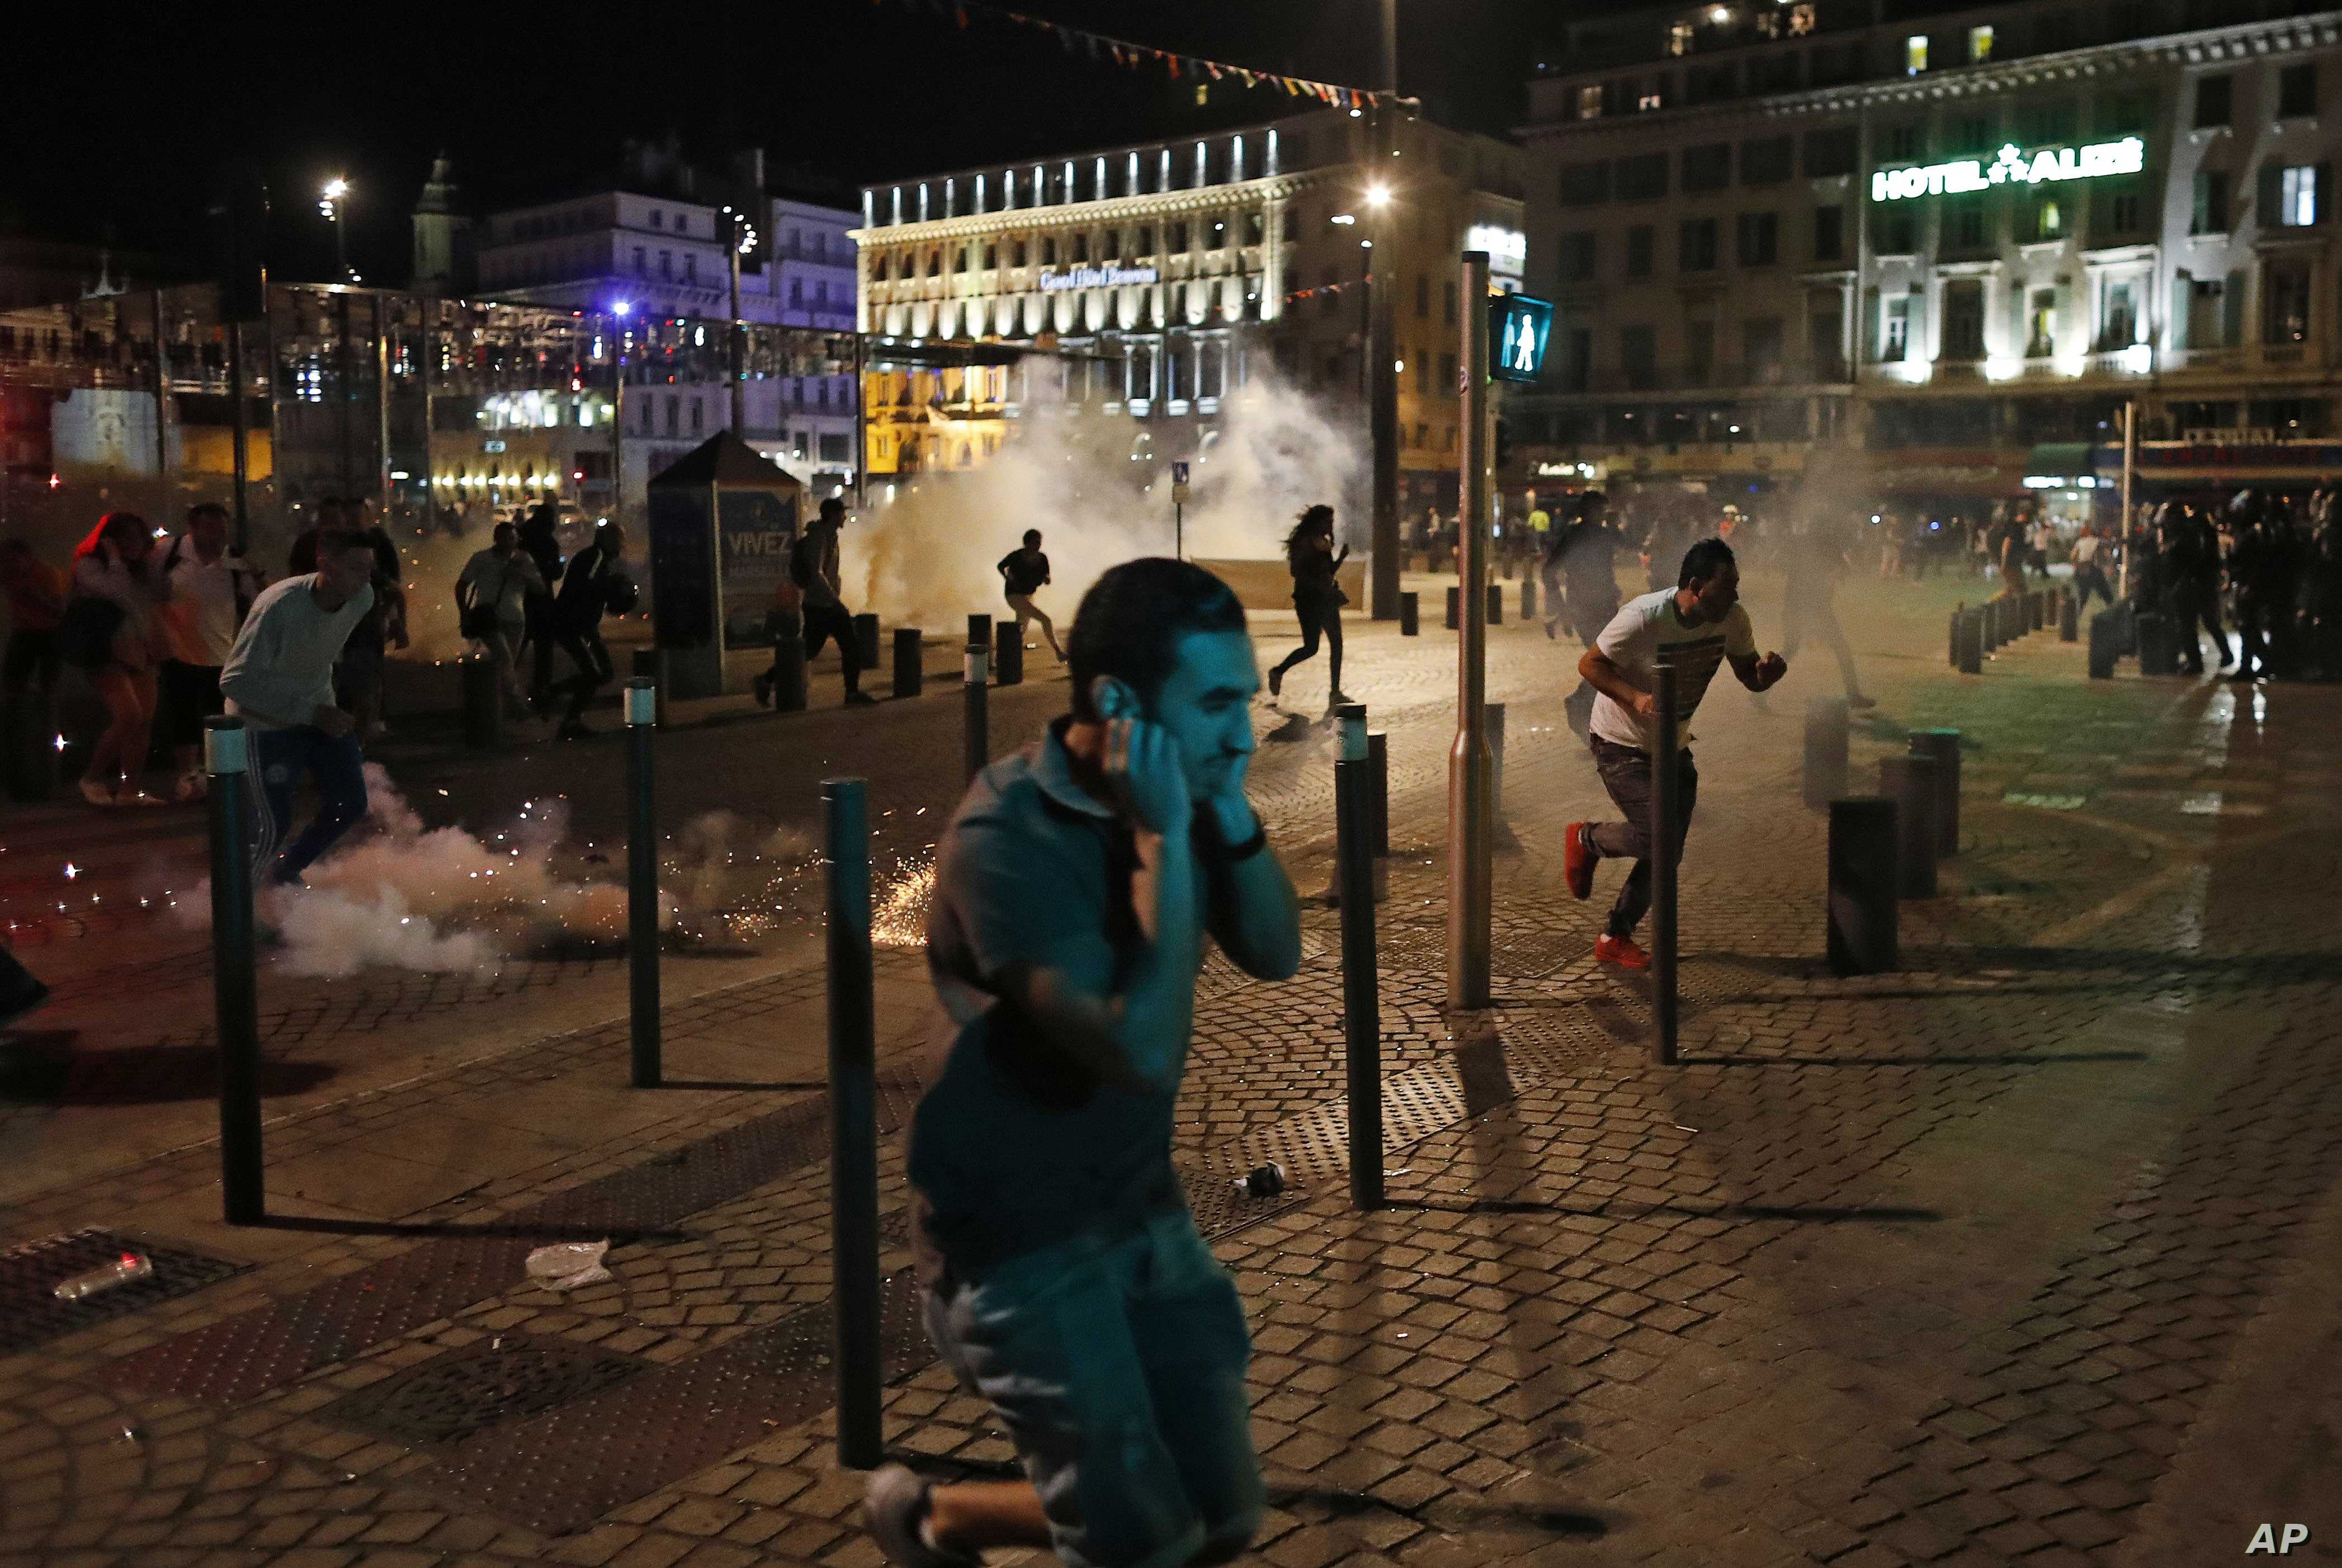 People run after police fired tear gas following clashes after the Euro 2016 soccer championship group B match between England and Russia in Marseille, France on June 11, 2016.